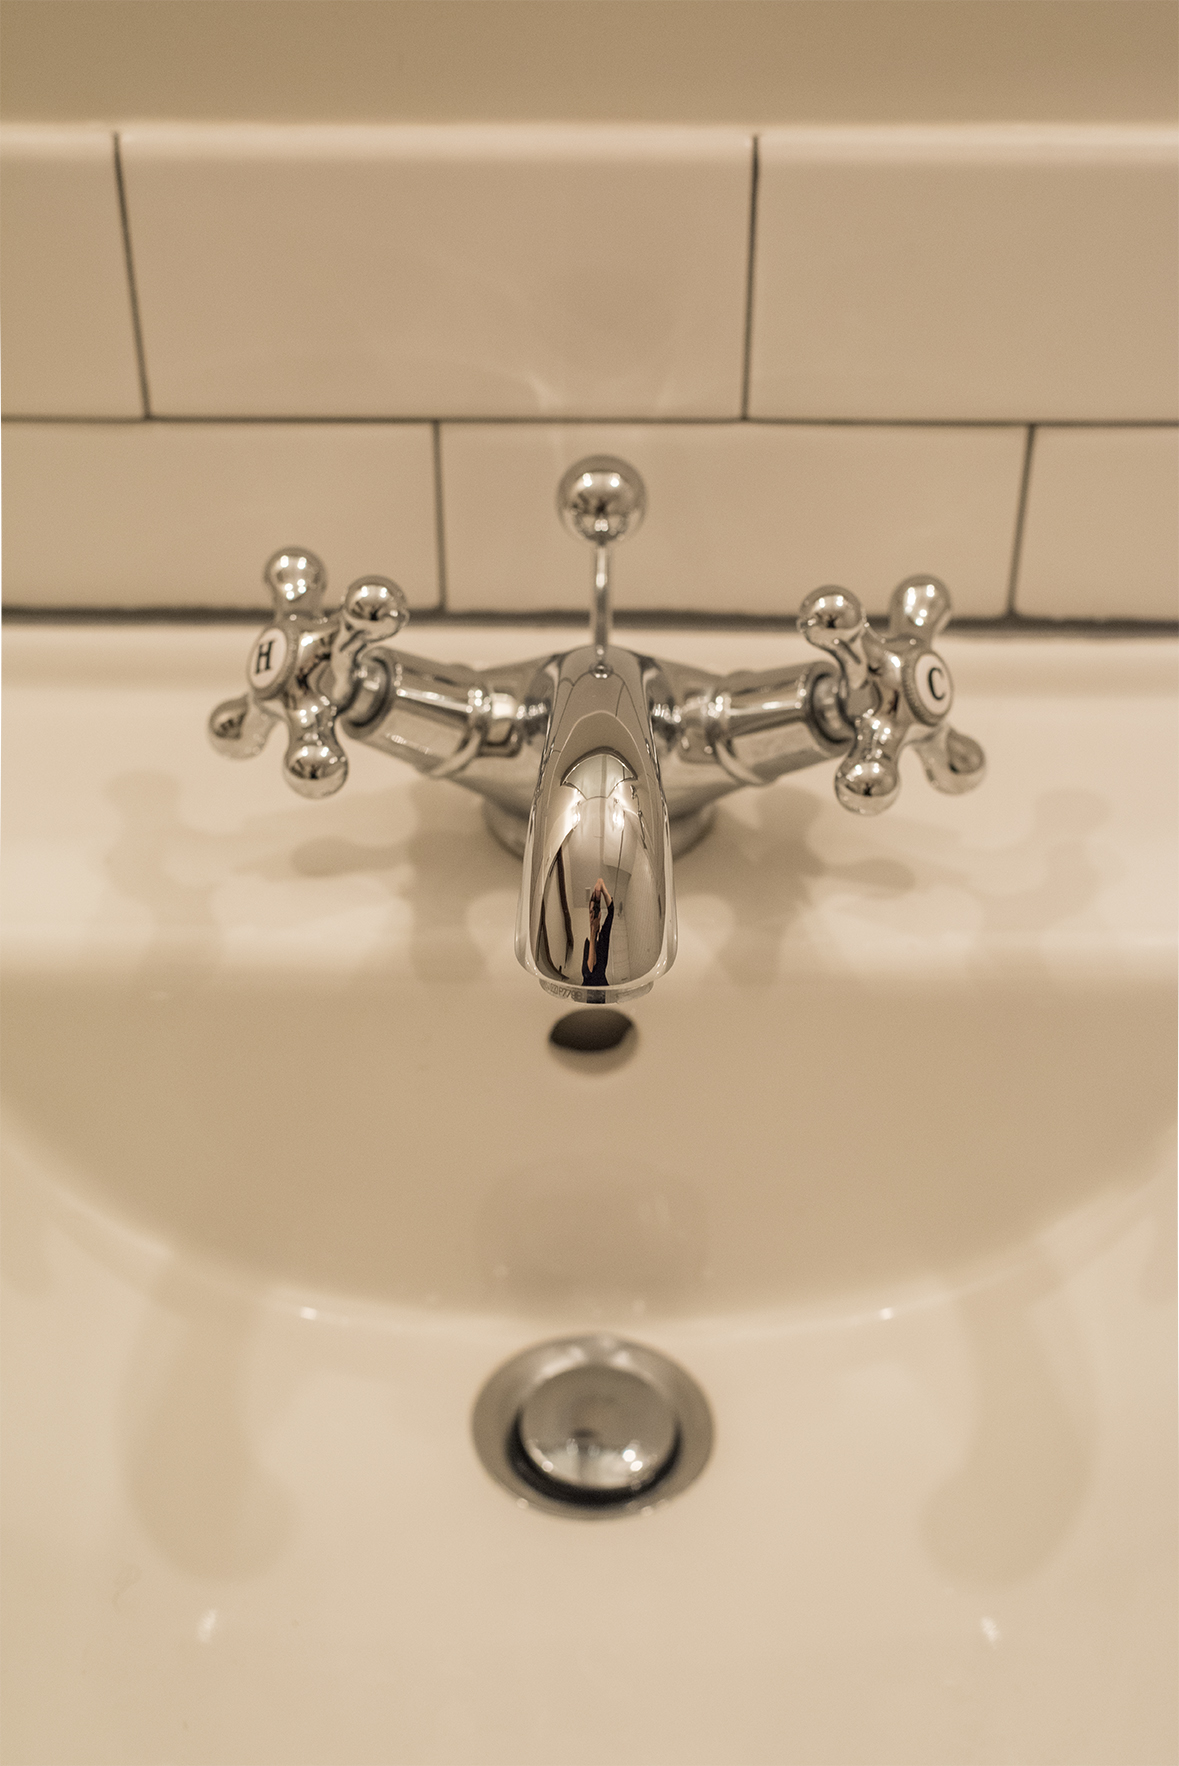 cross handle faucet